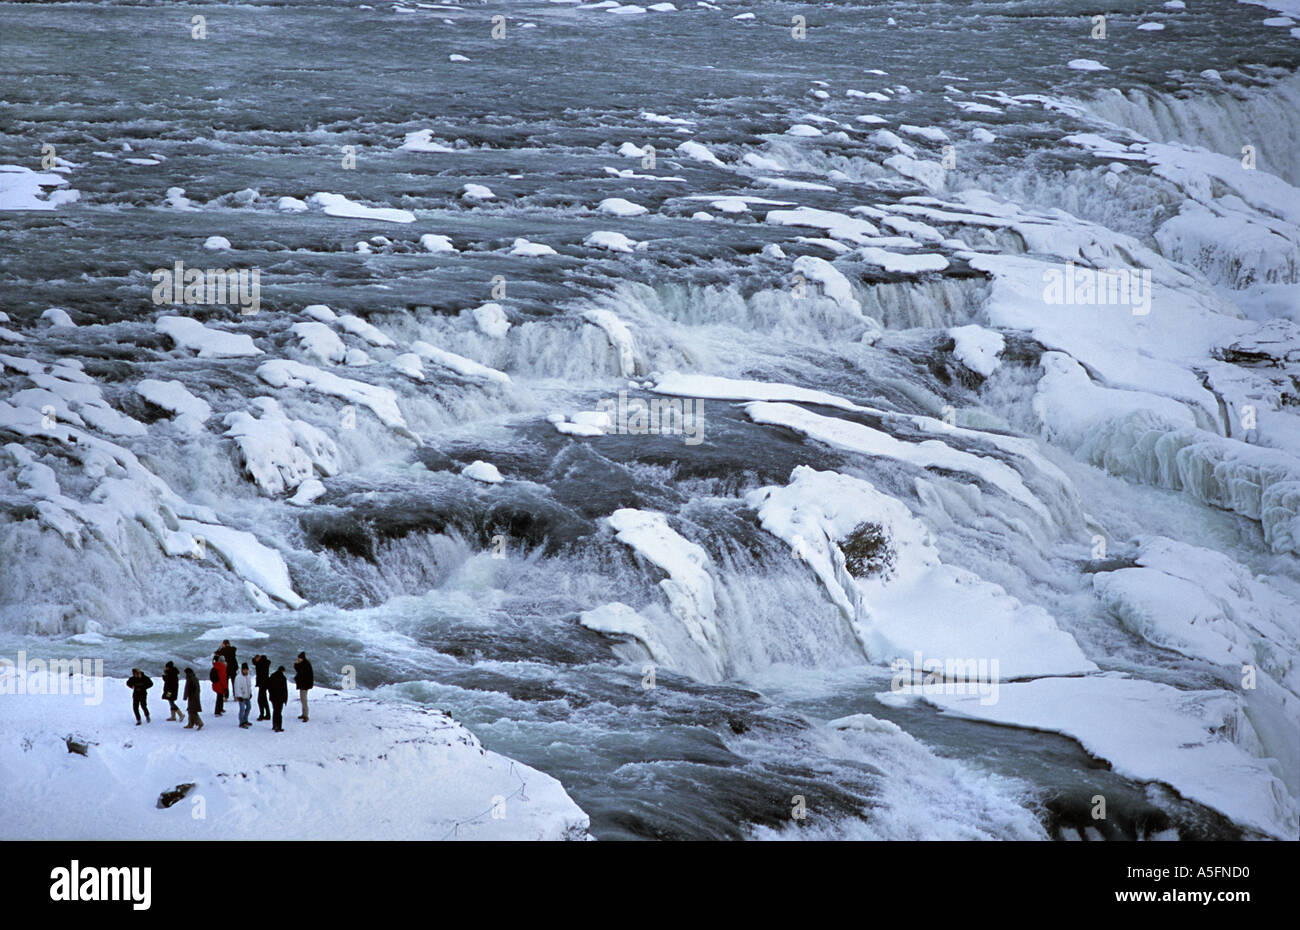 A group of tourists stand beside the powerful gushing waters of Gullfoss Golden Falls in the midst of winter Southern Iceland - Stock Image